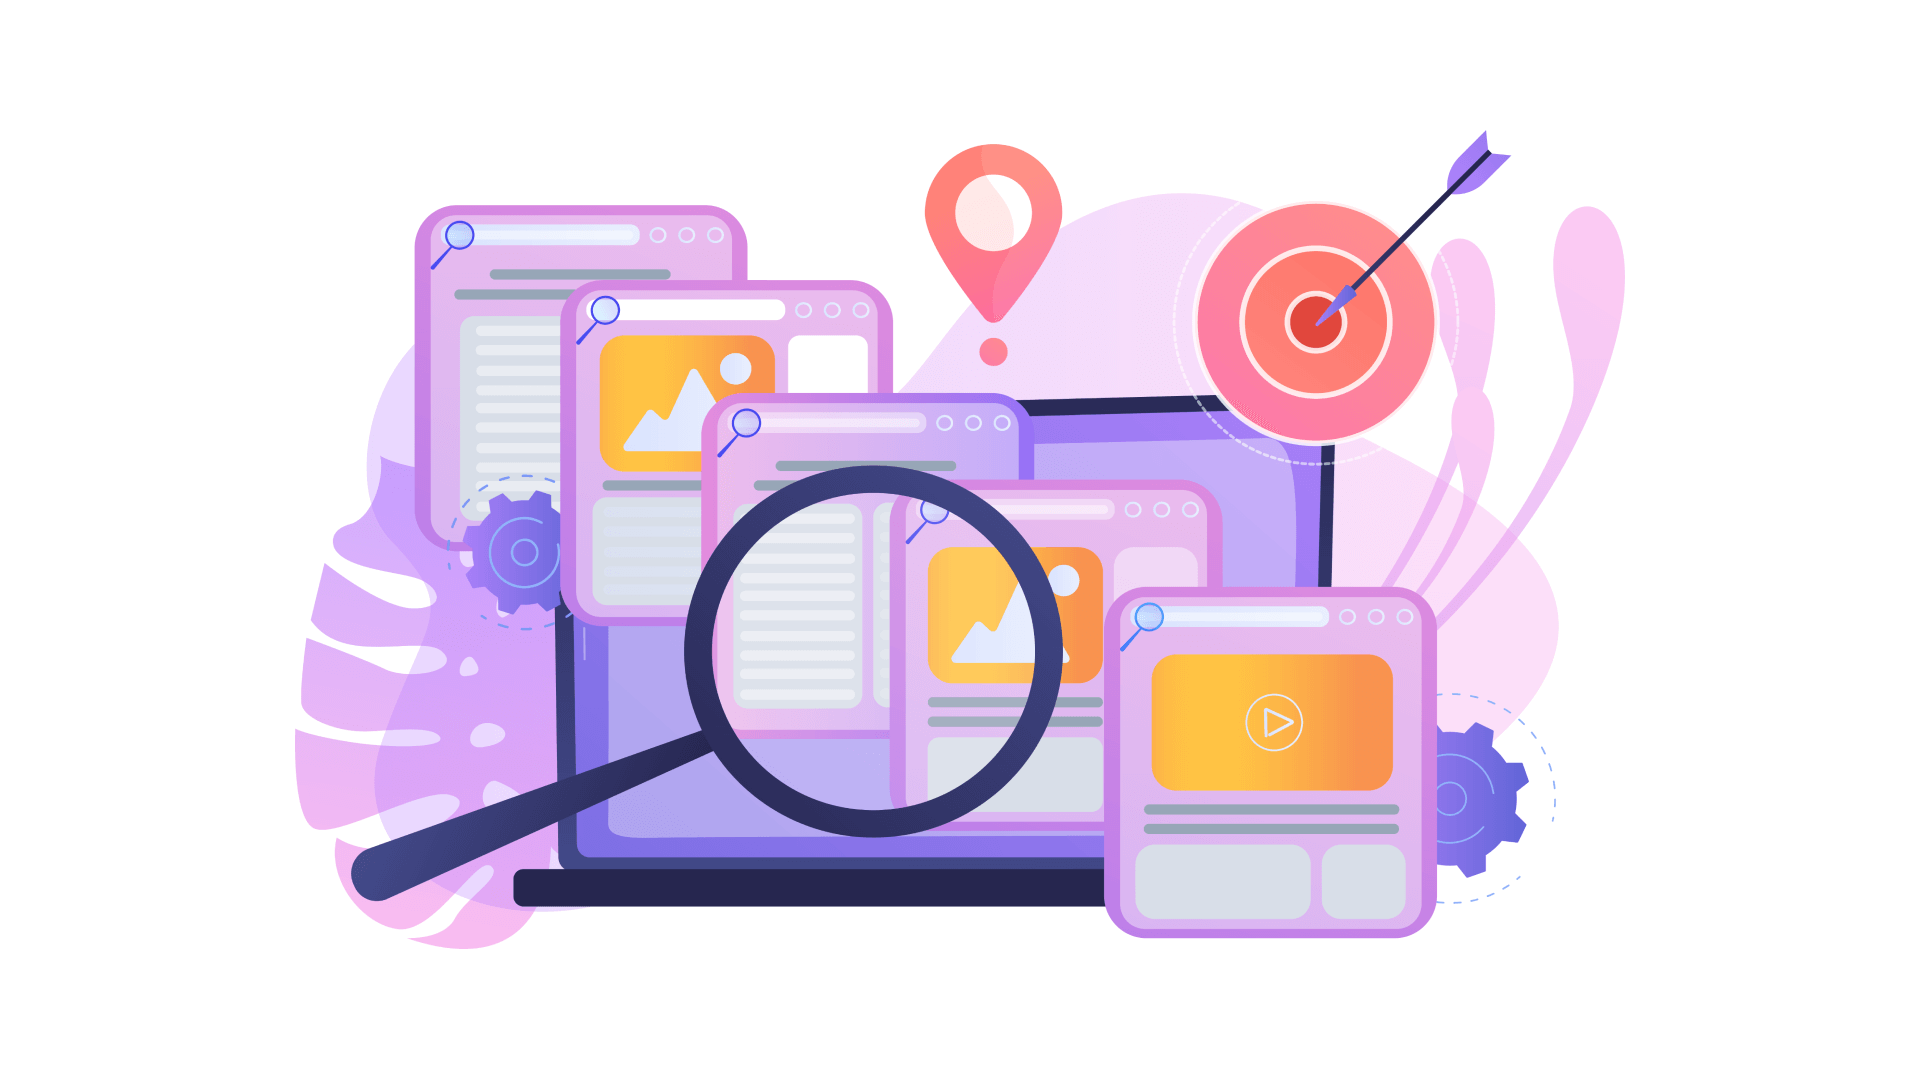 Location-based apps help businesses keep in touch with users at any time.